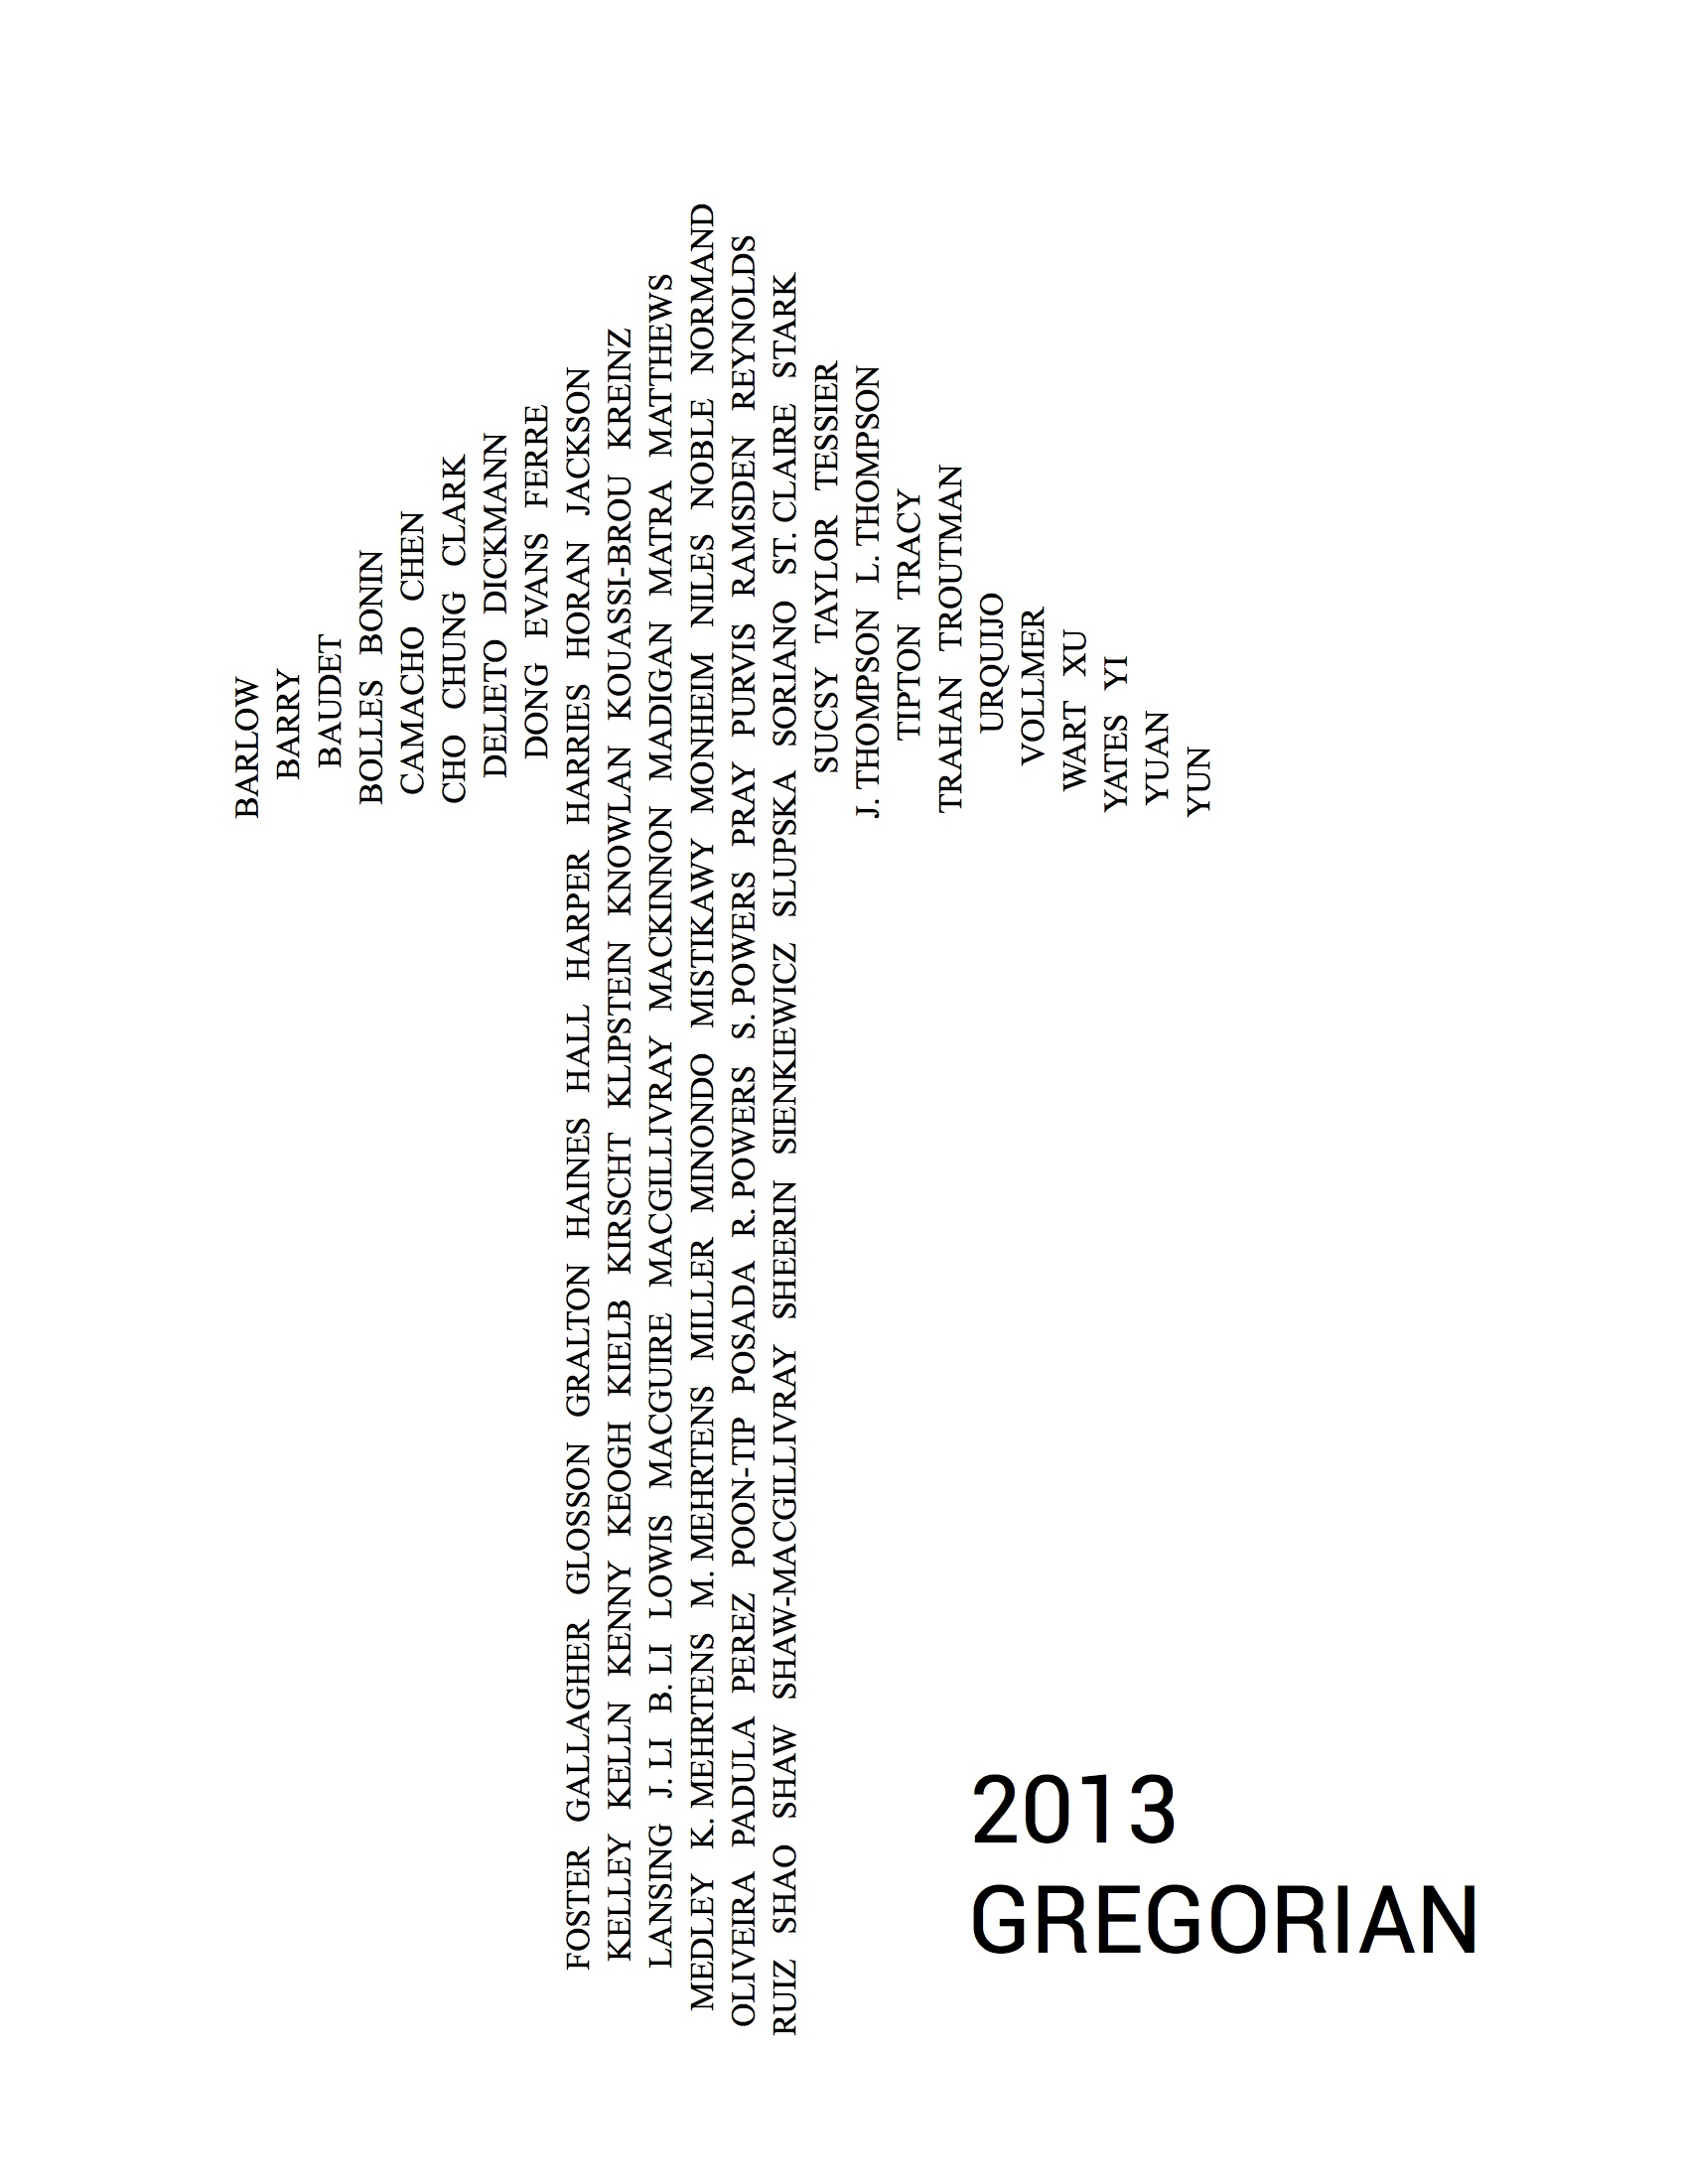 - Portsmouth Abbey School Yearbook CoverFor my graduating class of 2013. The arrow is a symbol and a list of everyone's last names.